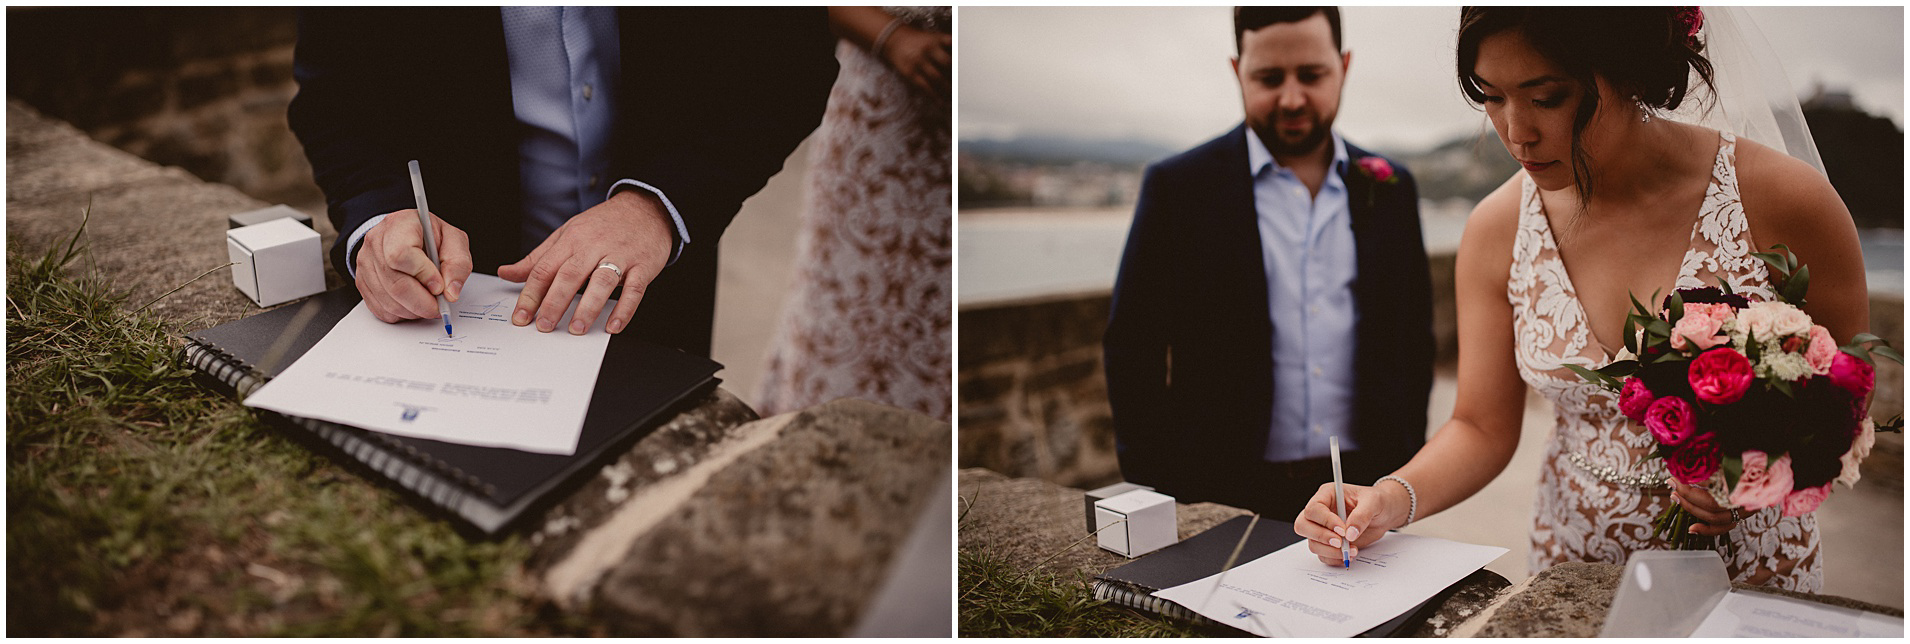 Brian & Julia - Destination wedding in San Sebastián  - Elopement in San Sebastian- ARTEFOTO44.jpg